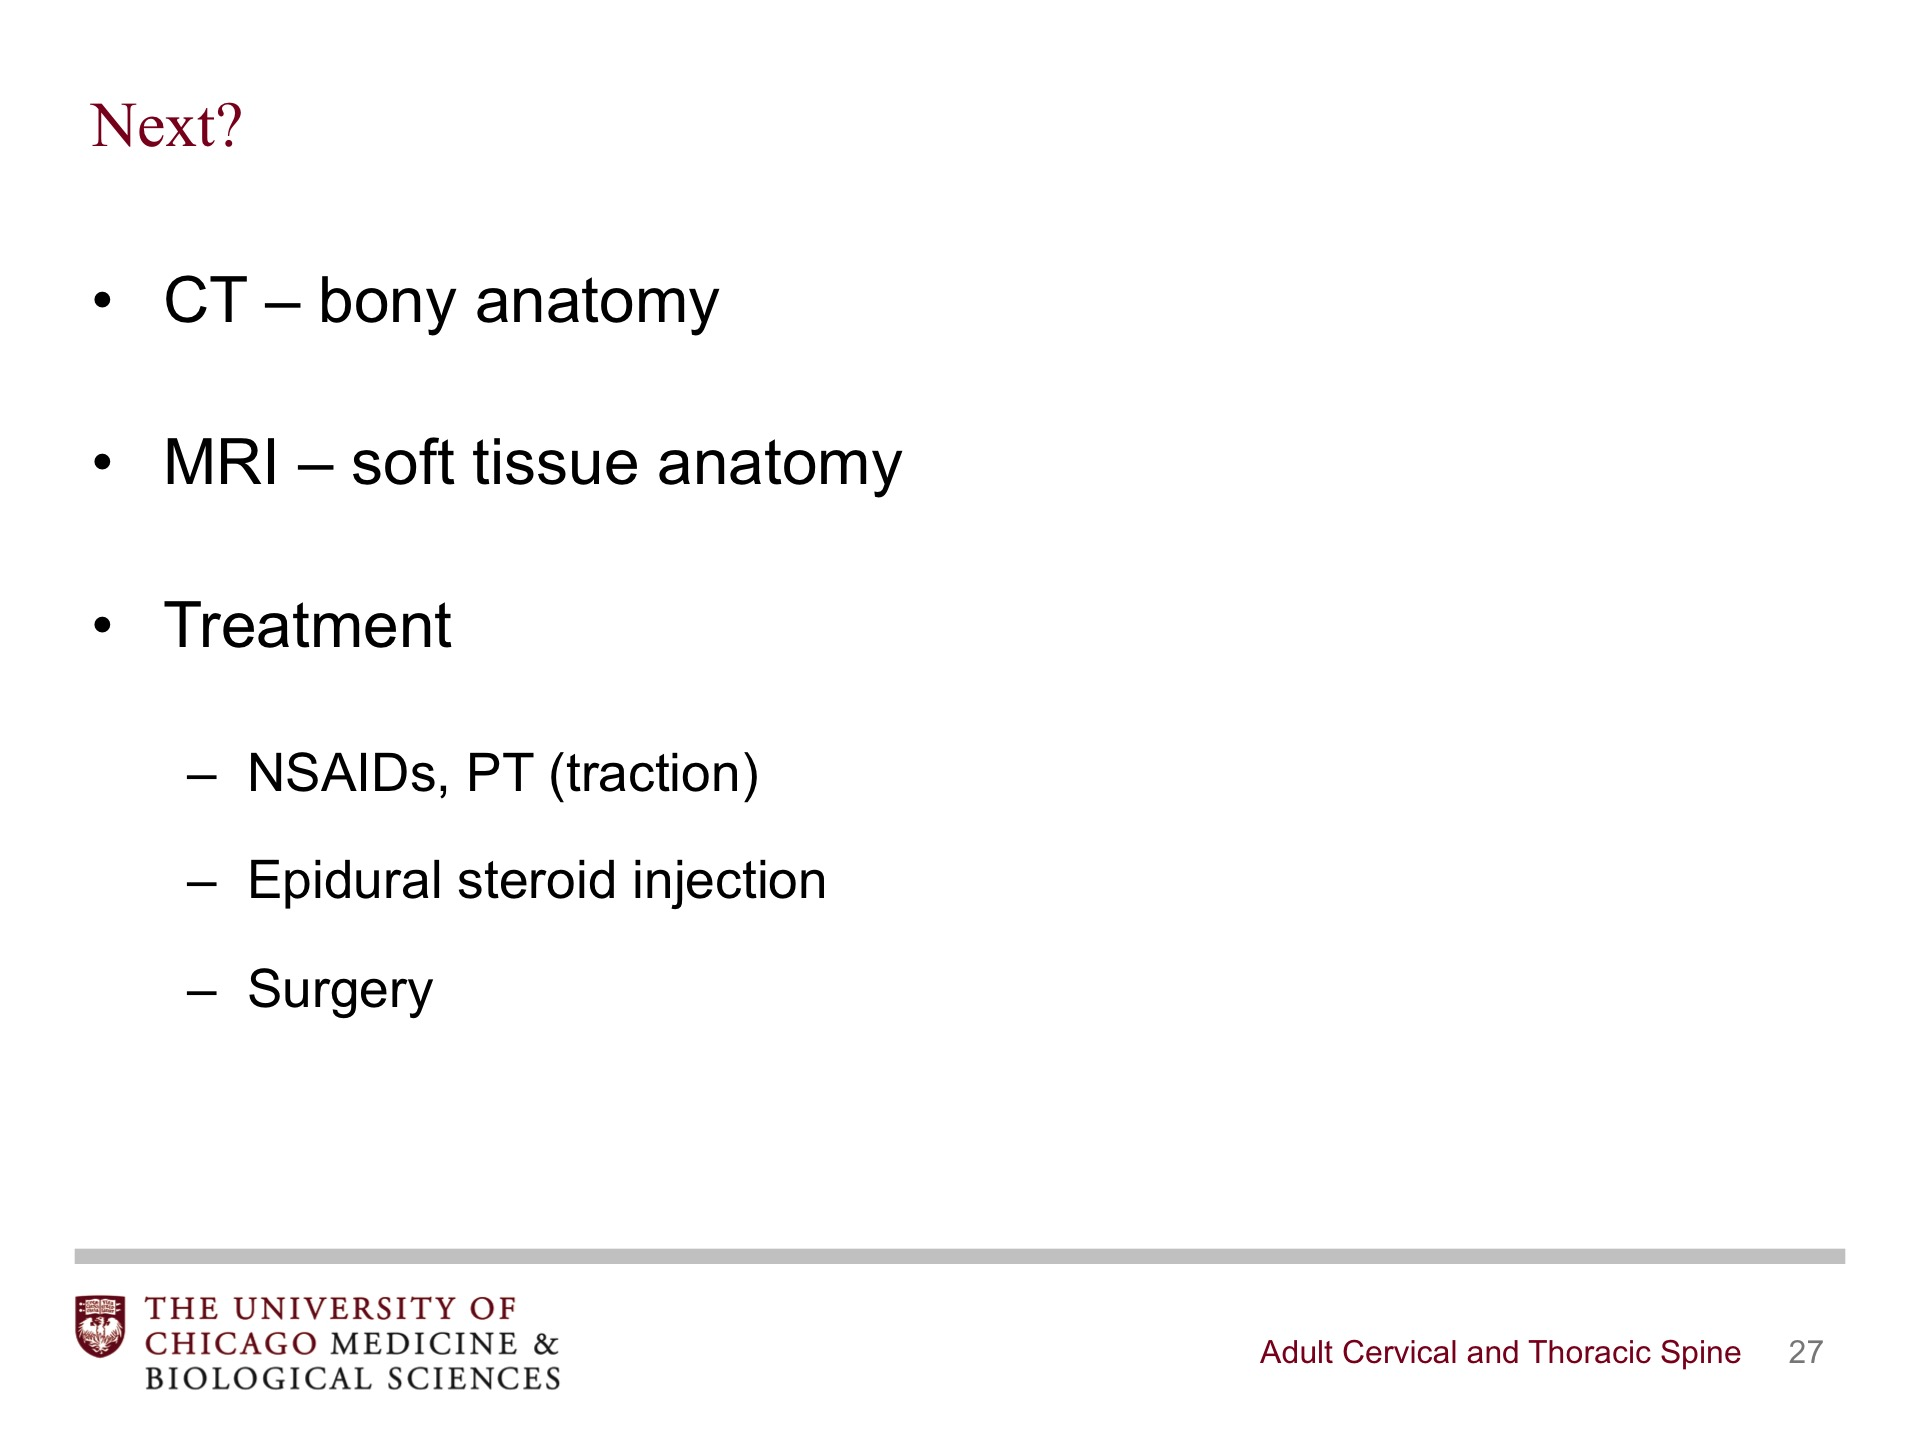 Adult Cervical and Thoracic Spine - BroadcastMed